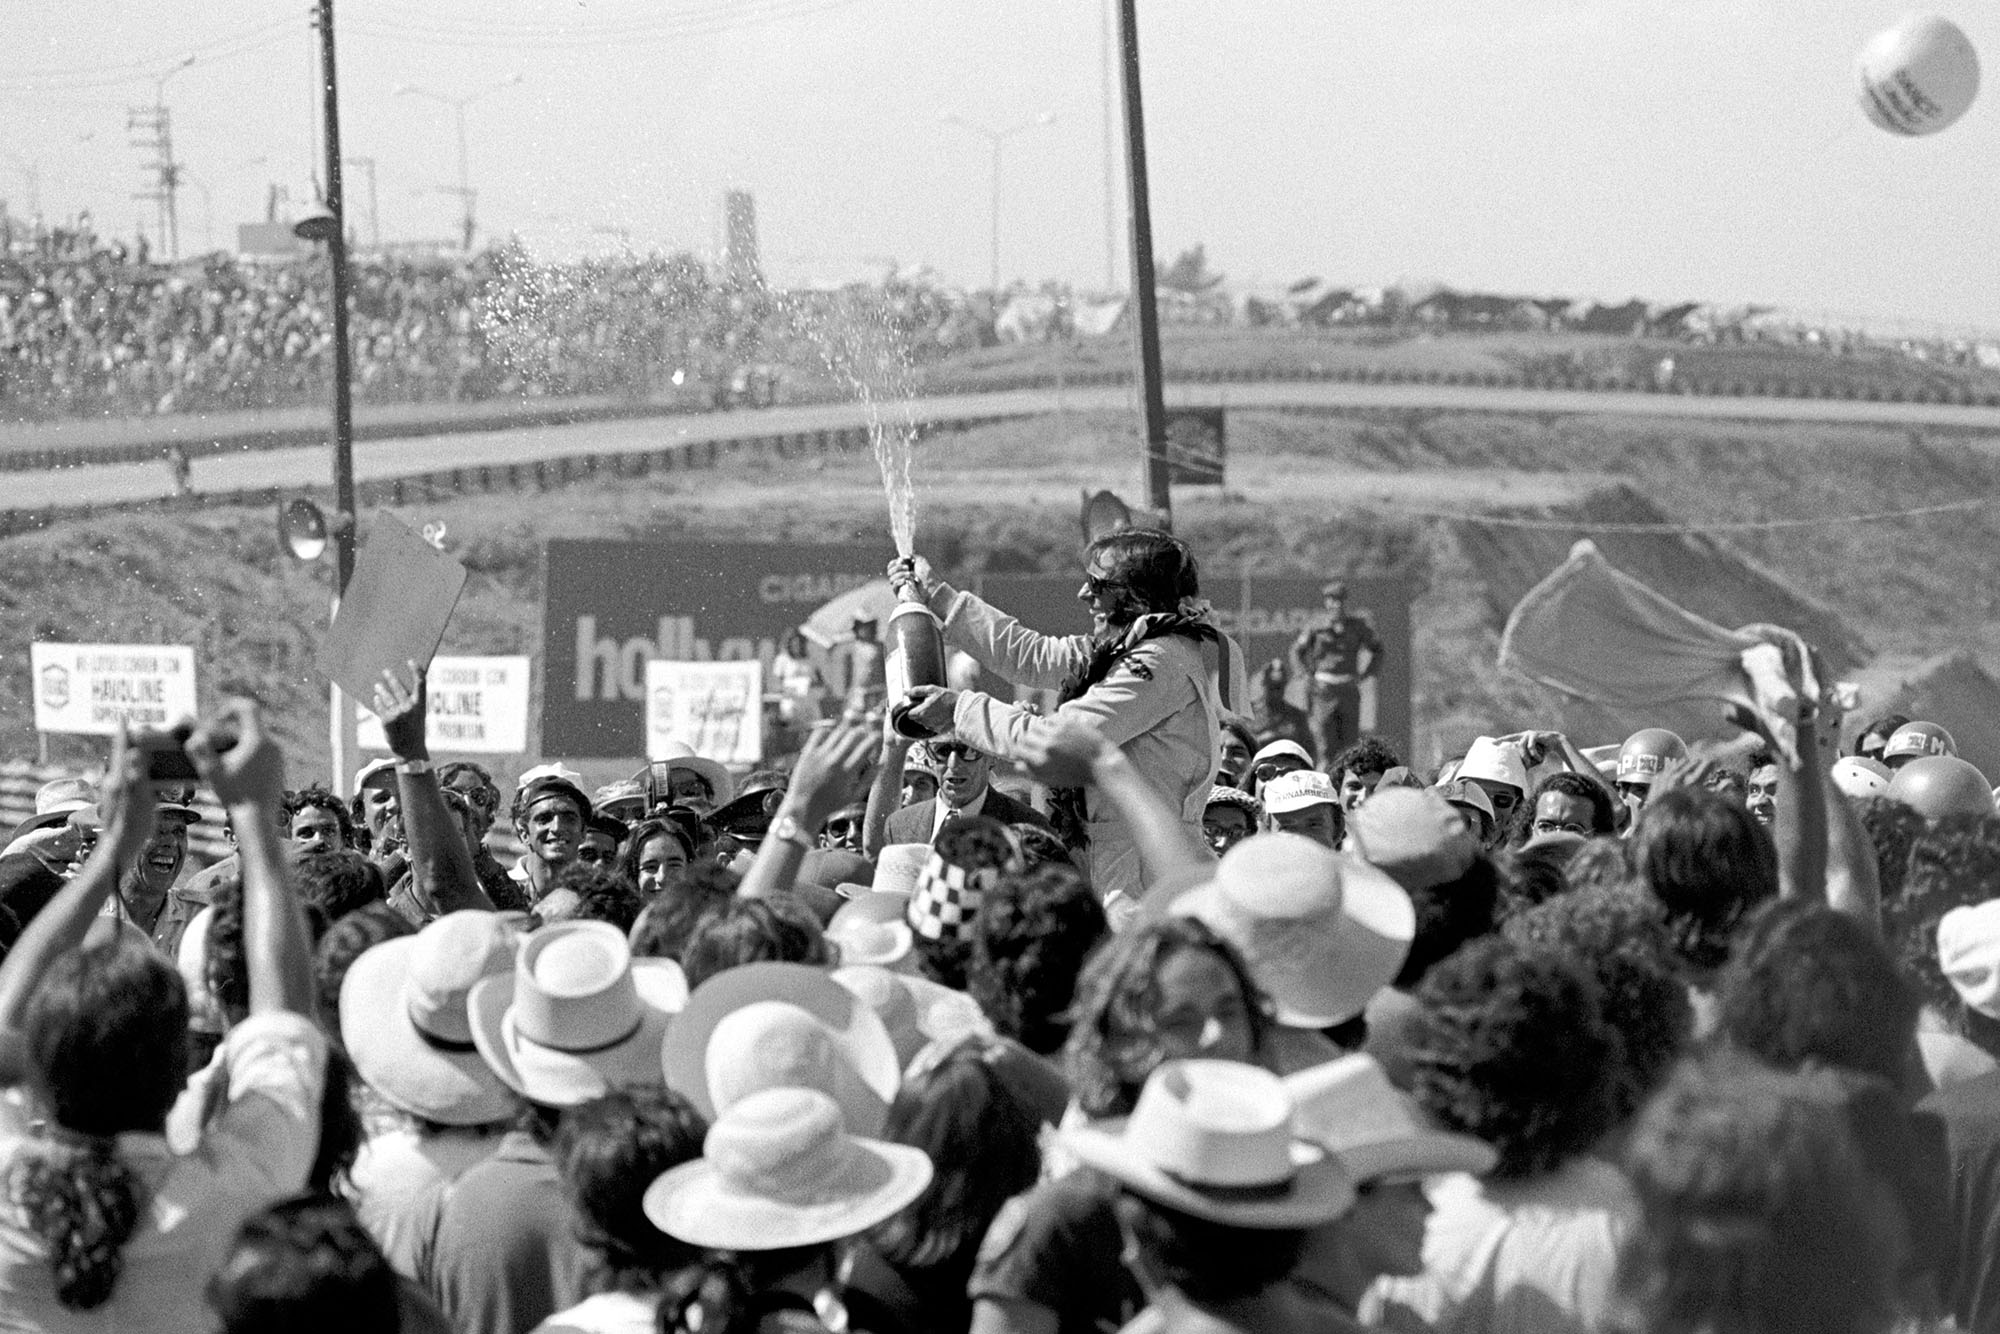 Emerson Fittipaldi (Lotus) sprays the champagne on the podium after winning the 1973 Brazilian Grand Prix.